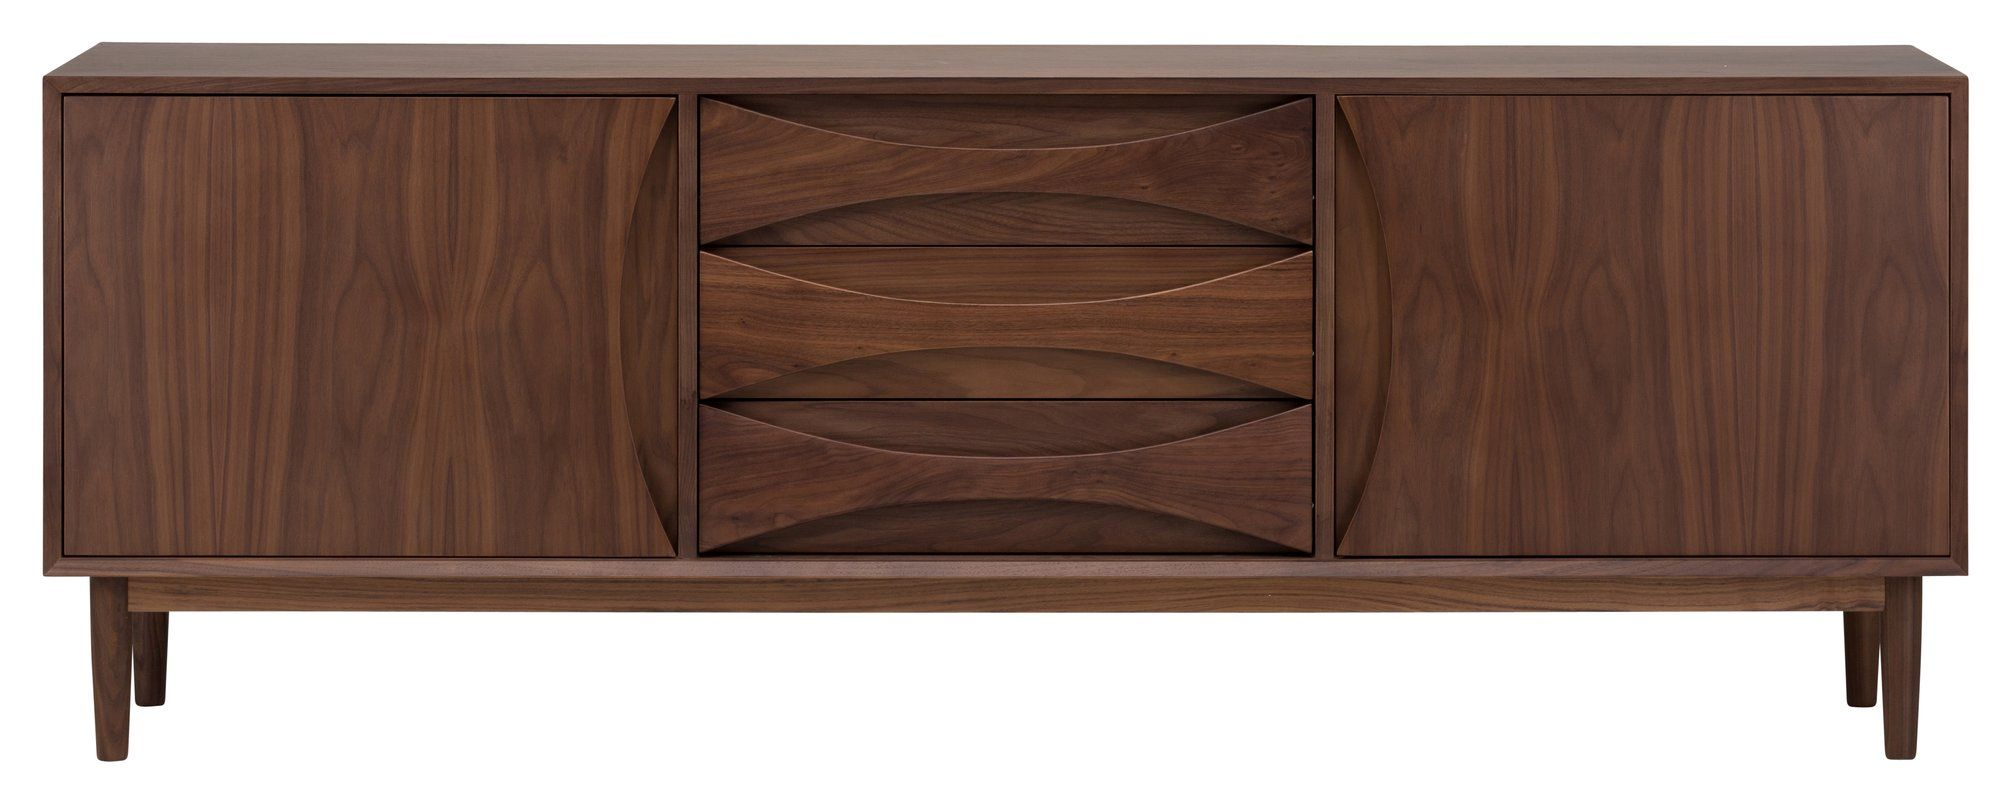 Cromaghs Sideboard In 2019 | کنسول | Sideboard, Furniture intended for Courtdale Sideboards (Image 18 of 30)